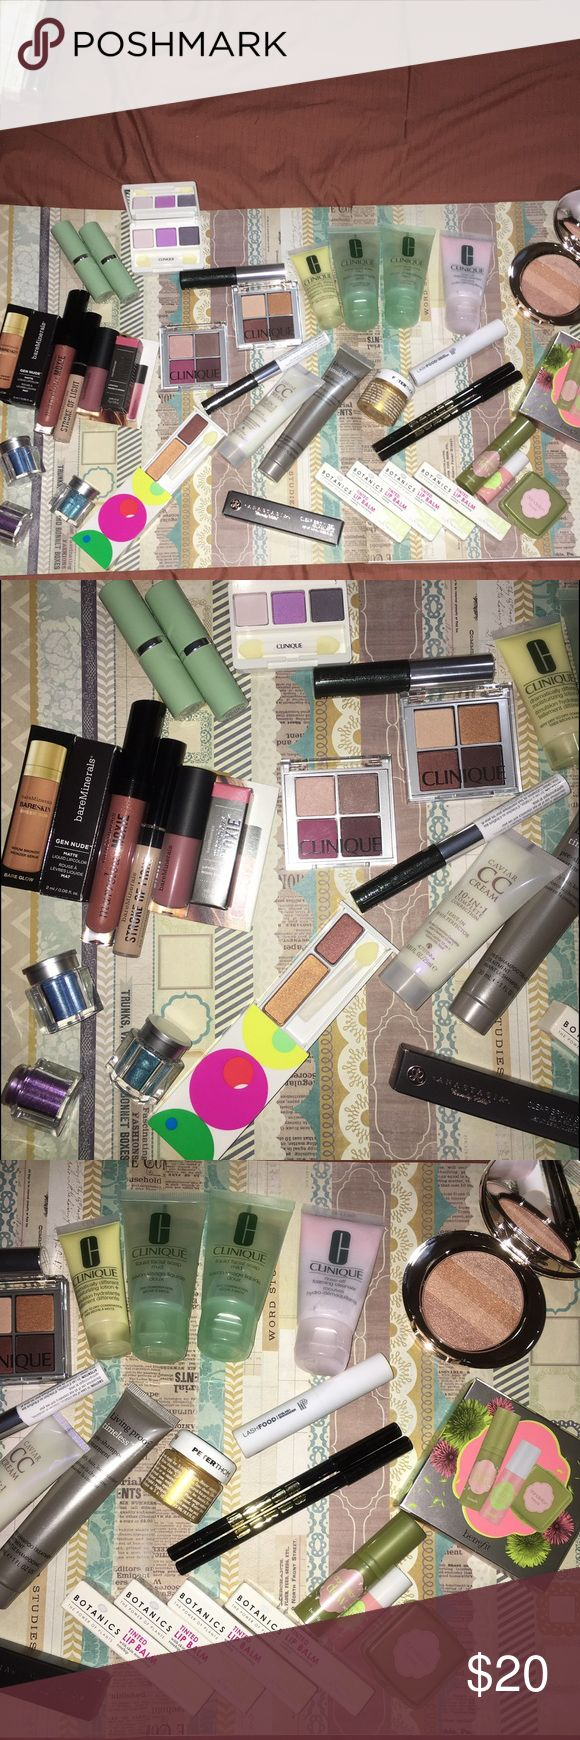 U pick new makeup Unopened, never used .... Clinique, bare minerals, buxom, benefit, boots botanics, no 7, smashbox, and more...    pick 4 items for $15  .     I have other makeup auctions so check those too.     The peter Roth gold is 0.5 oz (15ml) Clinique Makeup